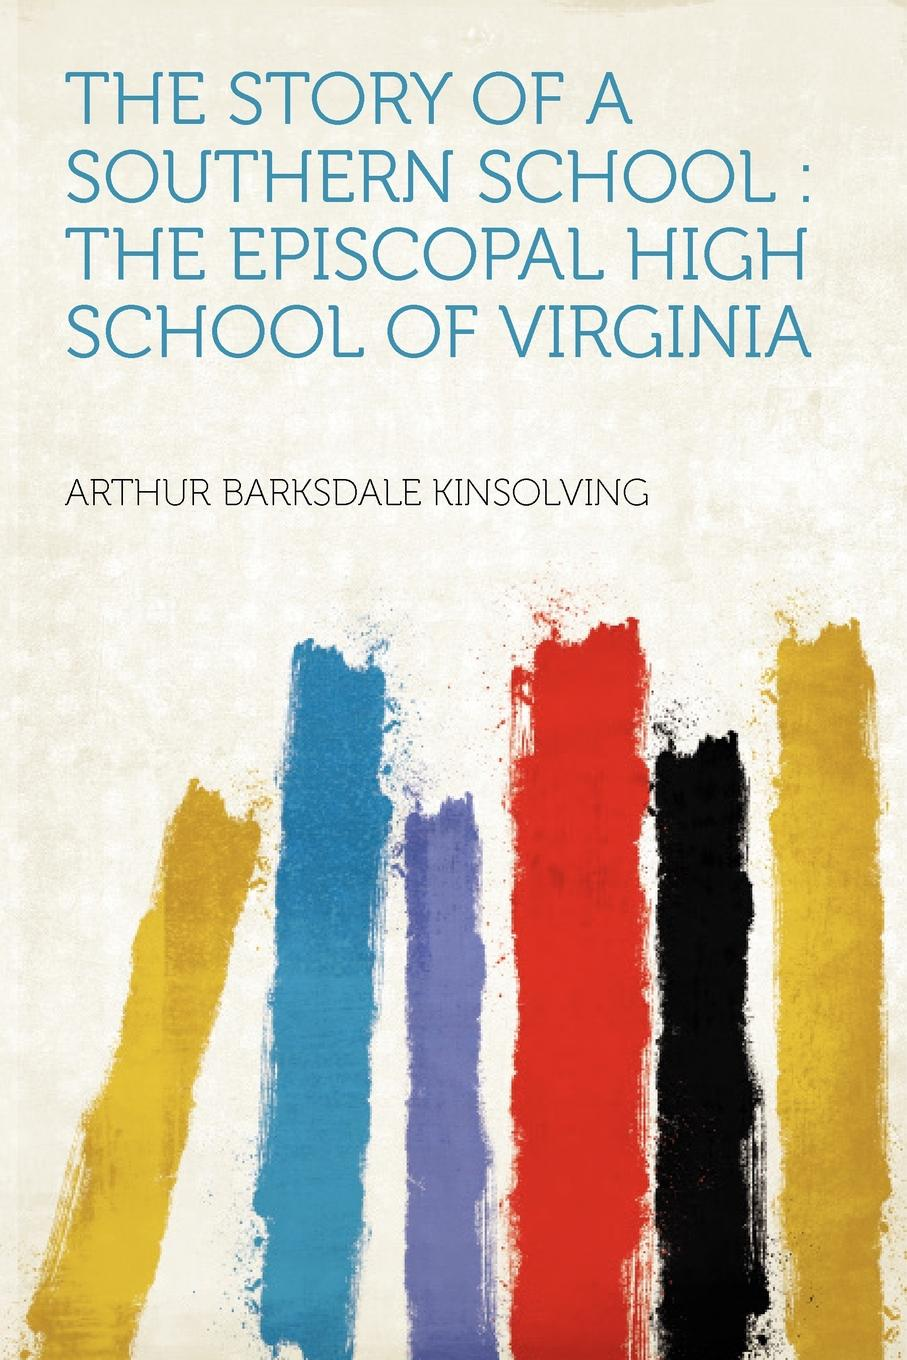 The Story of a Southern School. the Episcopal High School of Virginia